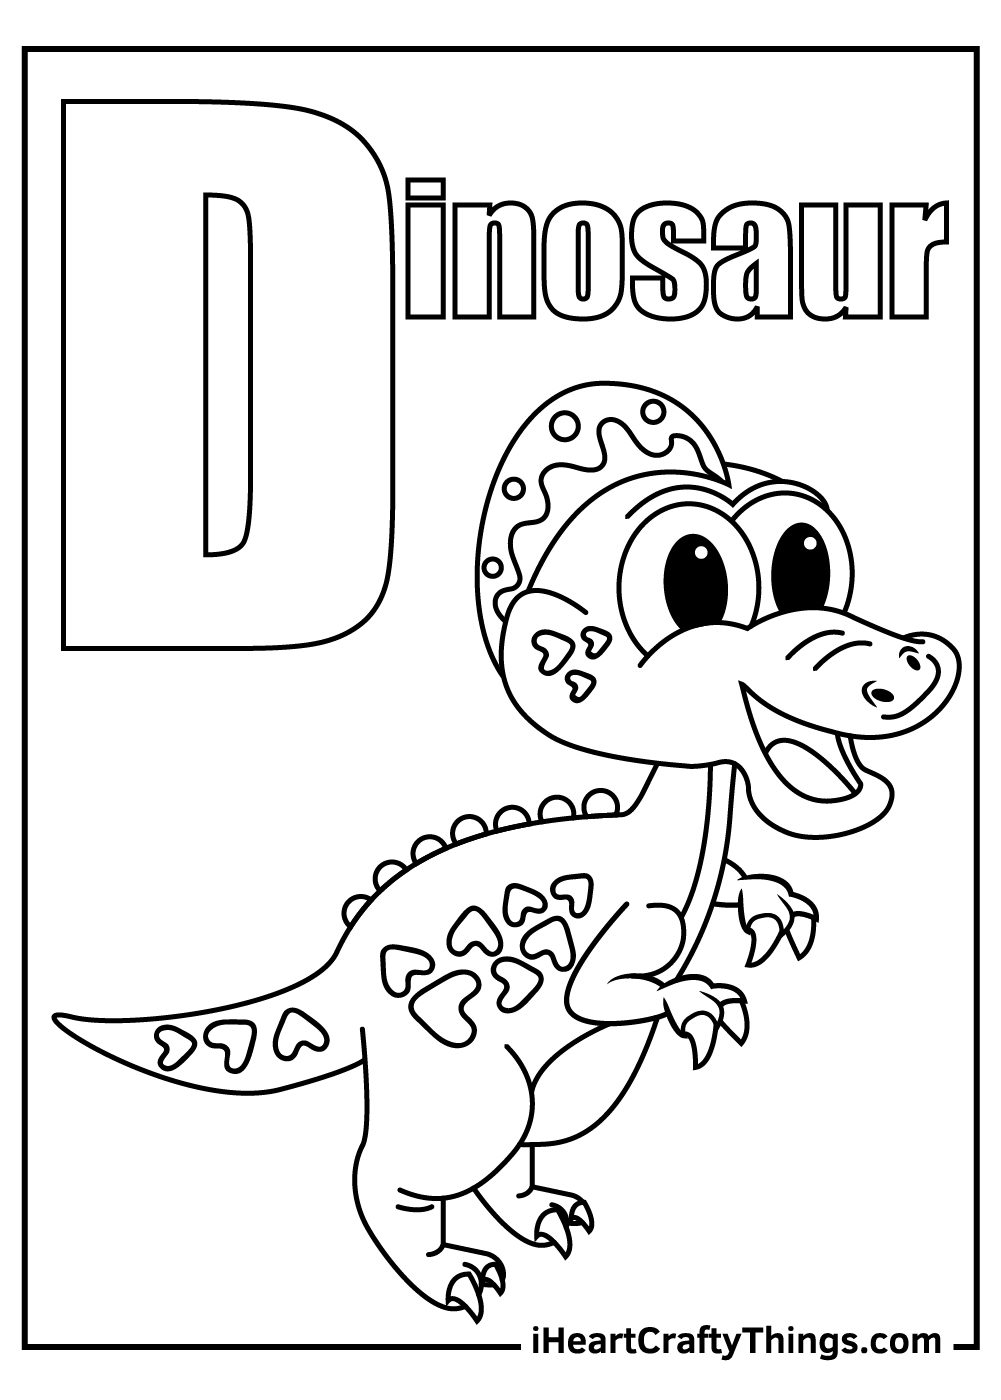 d is for dinosaur coloring pages free download